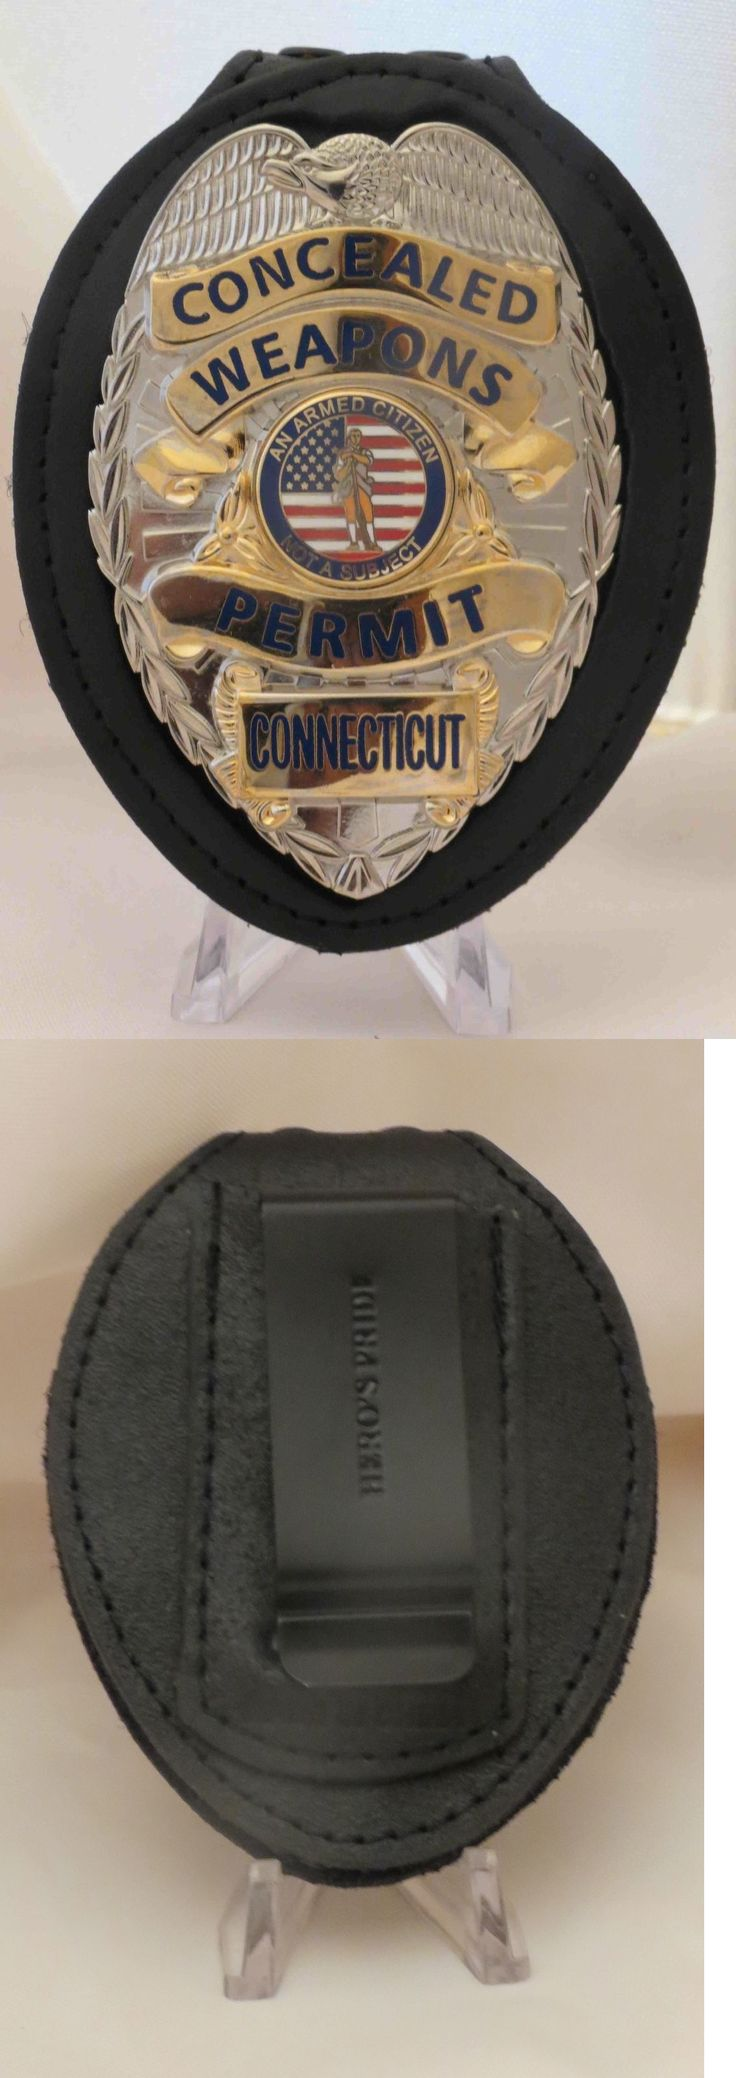 Other Hunting Holsters and Belts 22701: Concealed Handgun License Badge And Belt Clip Connecticut Silver Color -> BUY IT NOW ONLY: $40 on eBay!